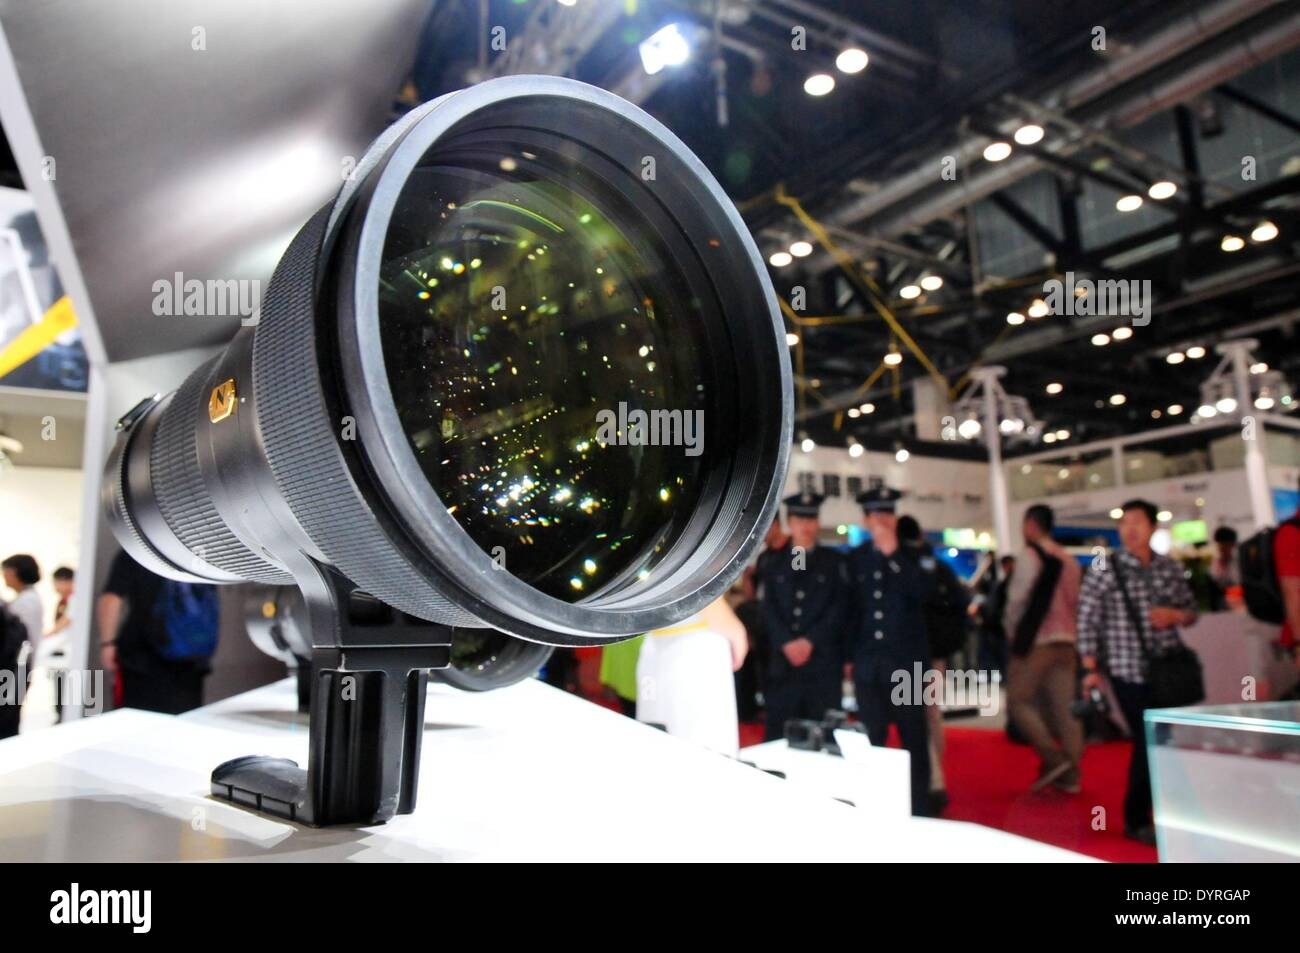 Beijing, China. 25th Apr, 2014. A Nikon lens is seen during the 17th China International Photograph & Electrical Imaging Machinery and Technology Fair in Beijing, capital of China, April 25, 2014. The fair kicked off here on Friday. © Ma Zhiyu/Xinhua/Alamy Live News - Stock Image